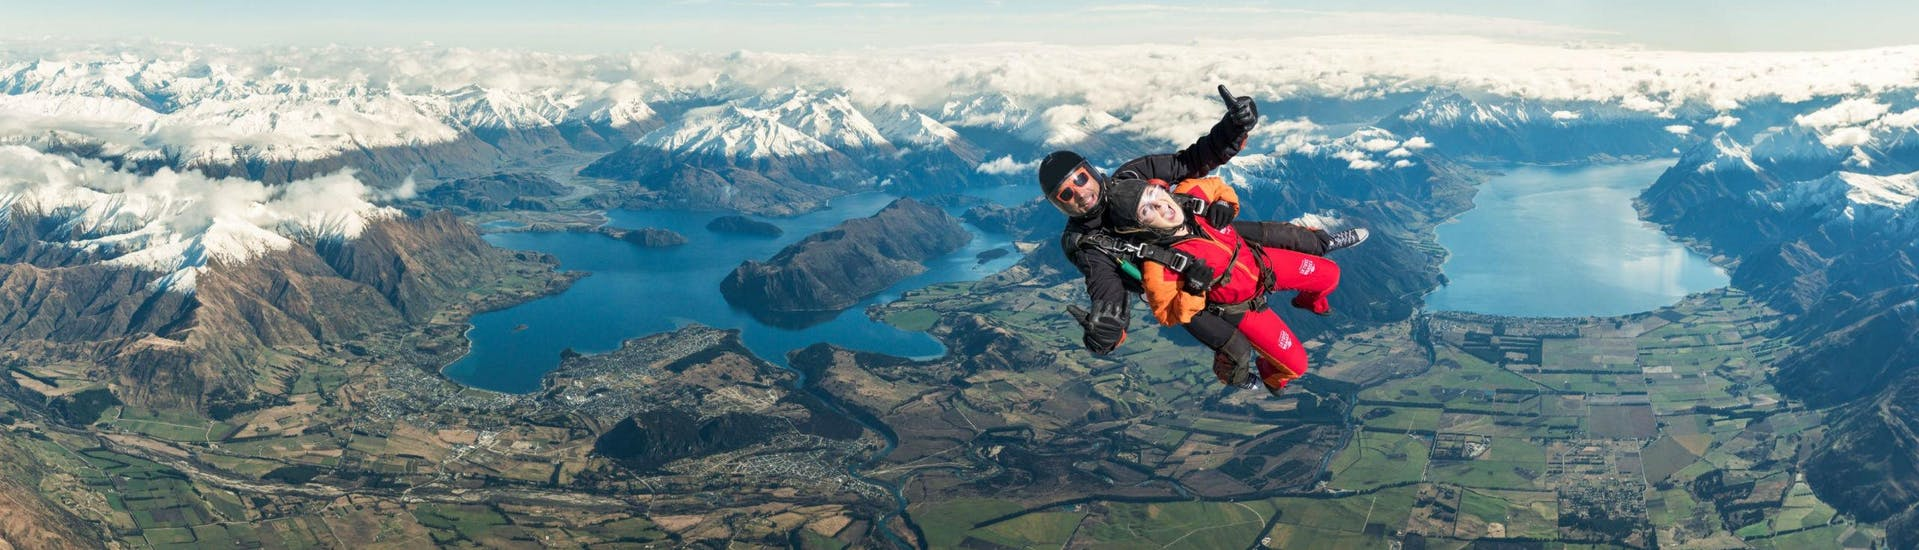 A tandem master from Skydive Wanaka and his passenger are in the middle of their Tandem Skydive in Wanaka - 12,000ft with Queenstown Transfer, above the spectacular mountainscape around Lake Wanaka.